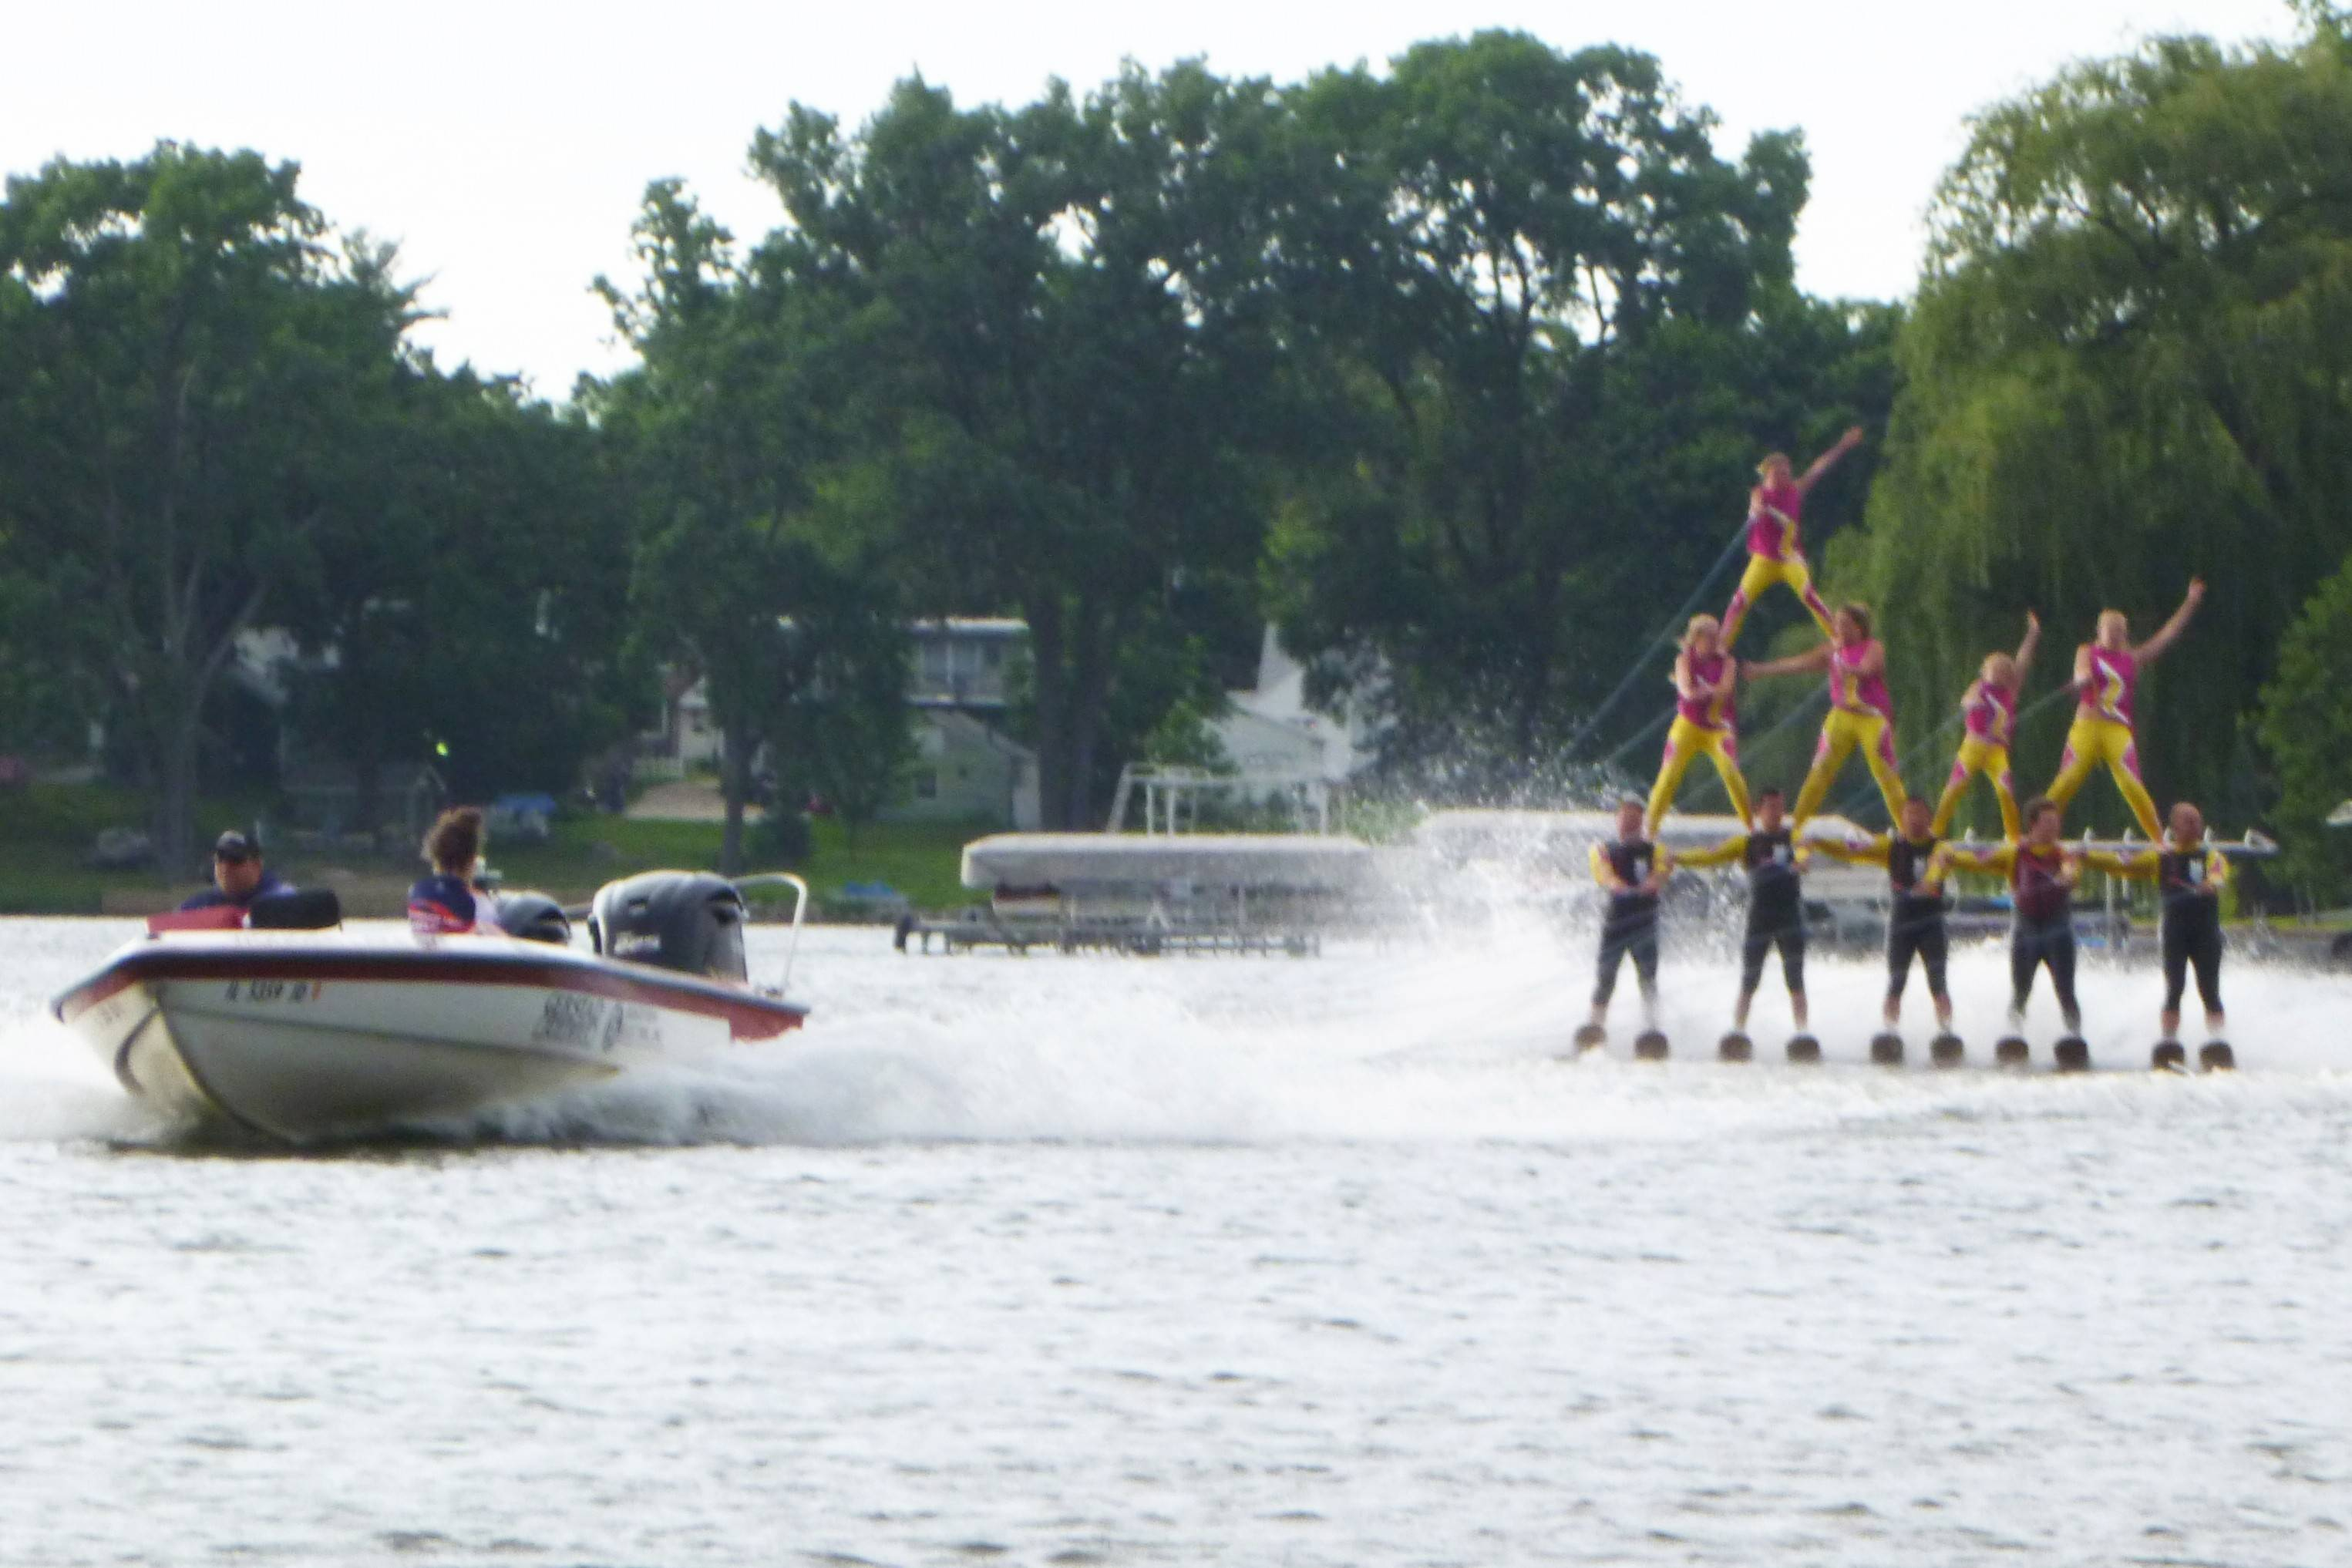 The Wonder Lake Water Ski Show Team performs at 5 p.m. Saturday, June 28, as part of the Mundelein Park & Recreation District's Community Picnic.